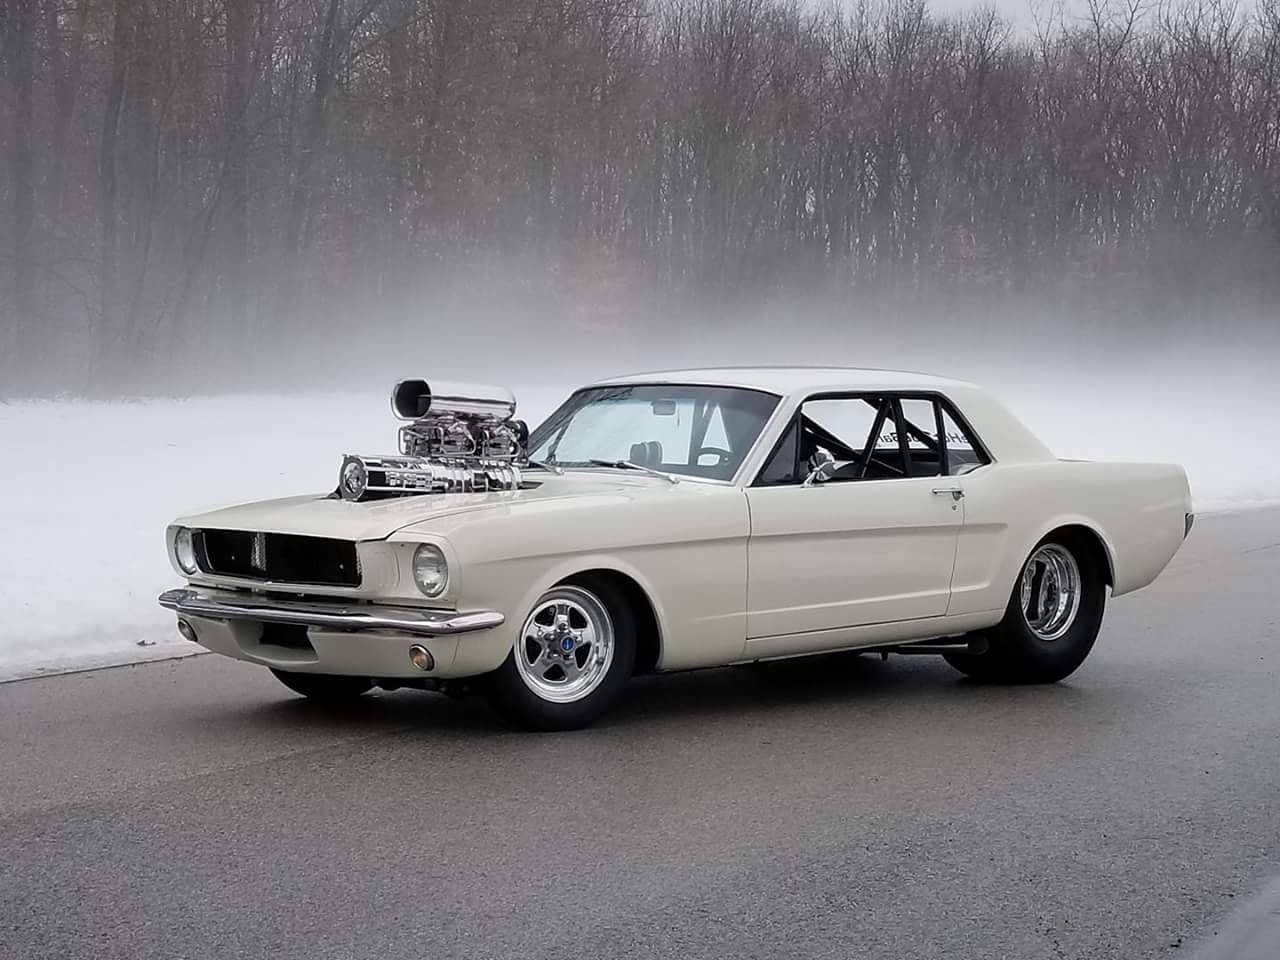 Pro Street Cars >> Pro Street Cars Drag Cars Street Rods And Muscle Cars Mustang